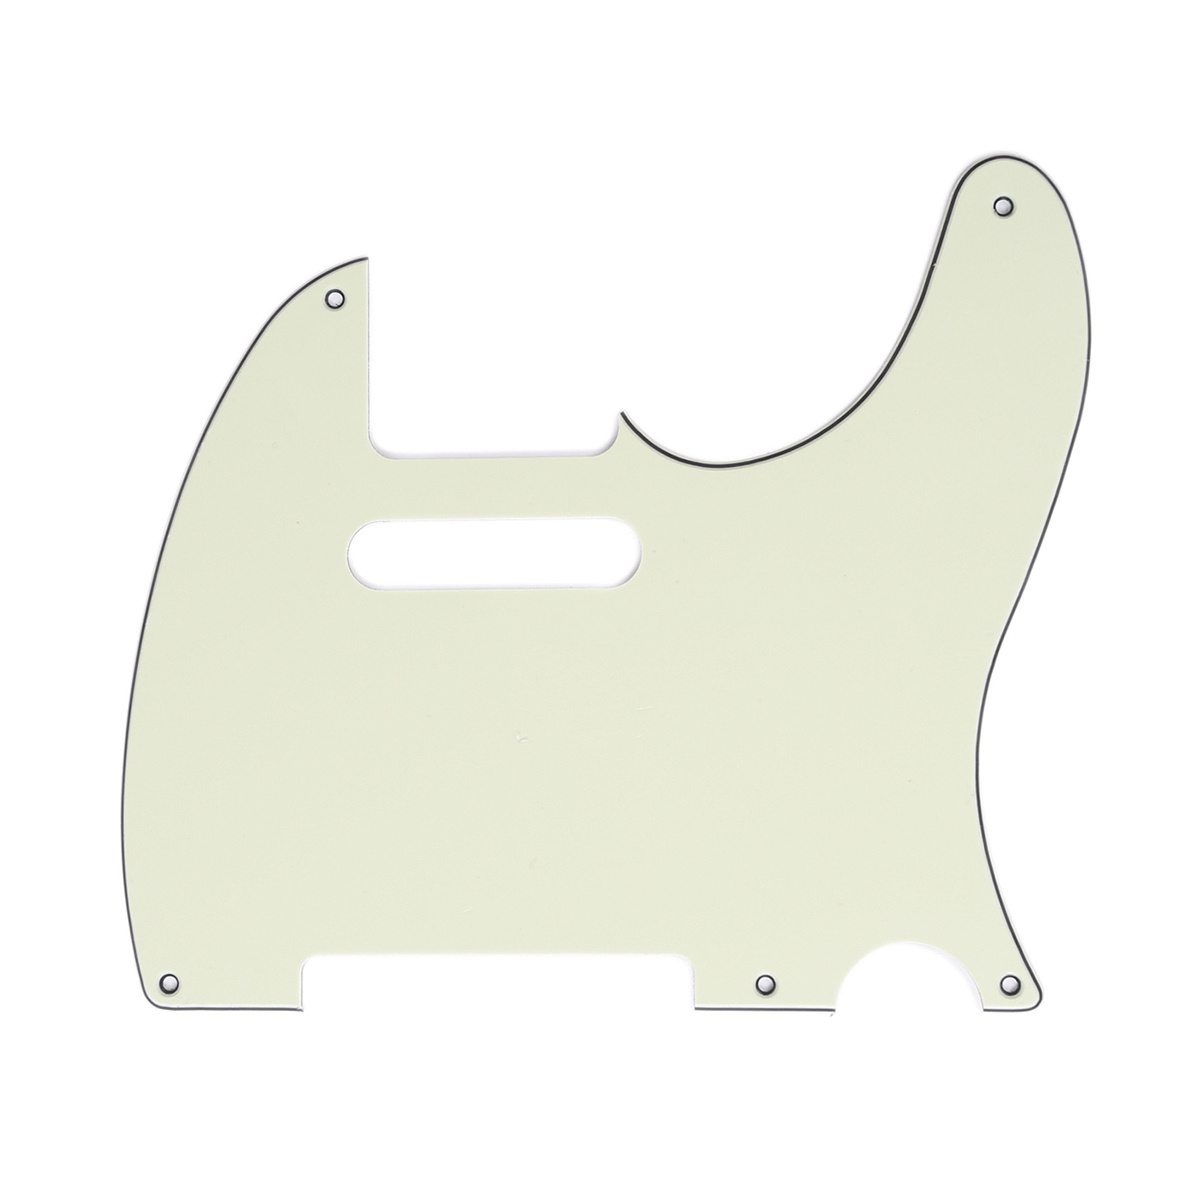 Musiclily 5 Hole Vintage Tele Pick Guards Guitar Scratch Plate for Fender American//Mexican Made Standard Telecaster Style Electric Guitar 4Ply Tortoise Shell